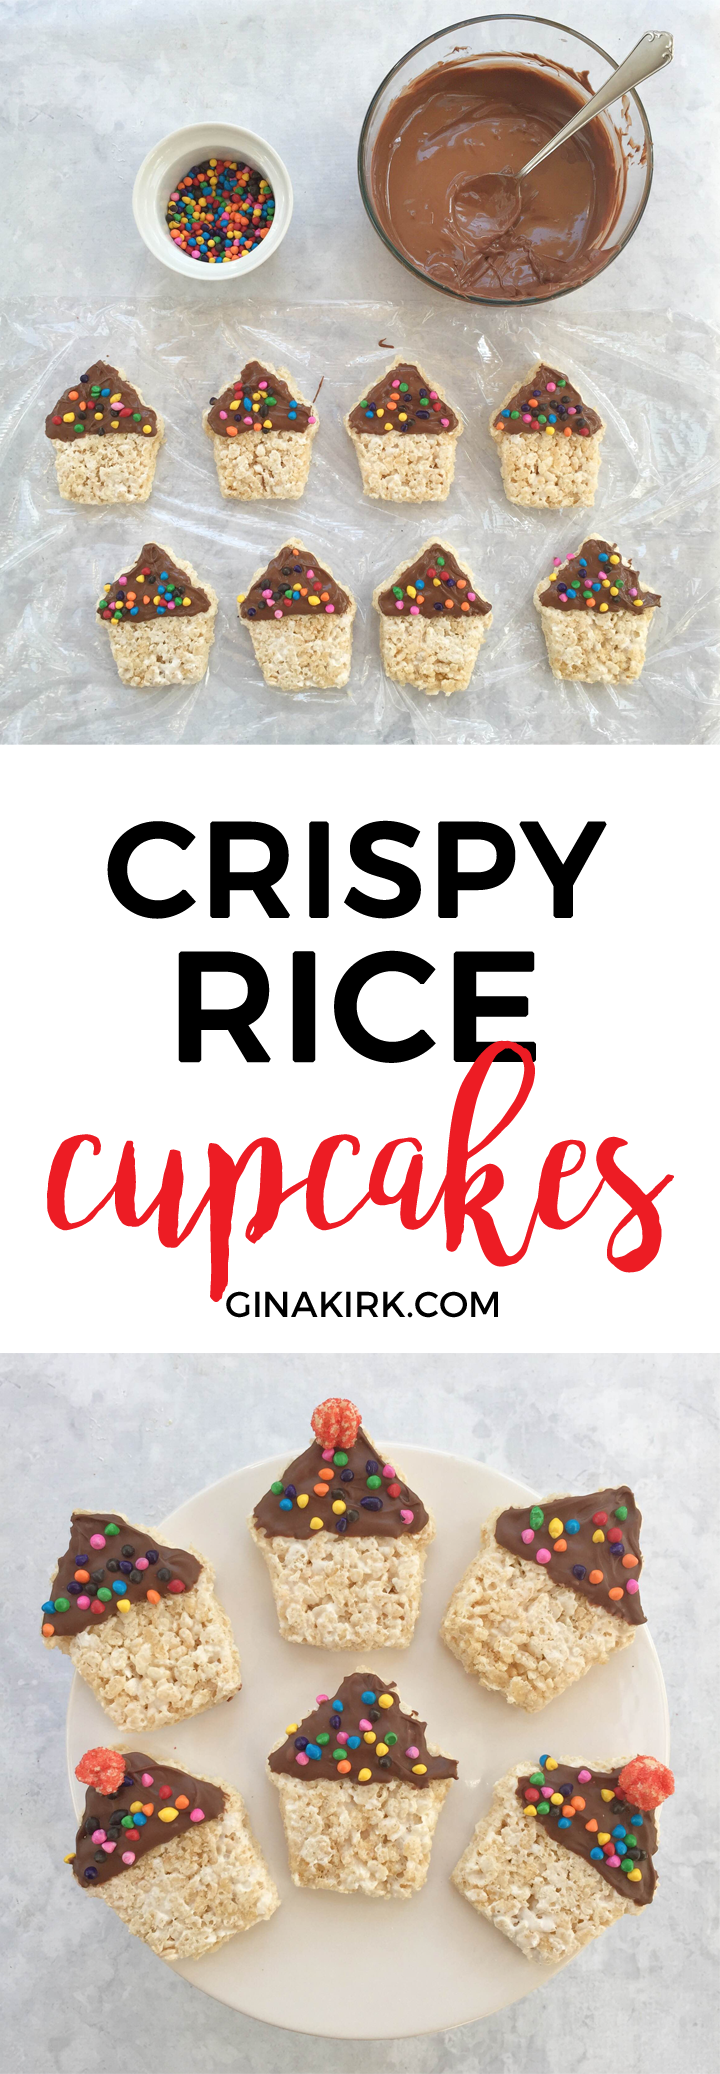 Crispy rice birthday cupcakes | Rice krispie treats | Easy birthday snack ideas | DIY birthday party food | GinaKirk.com @ginaekirk